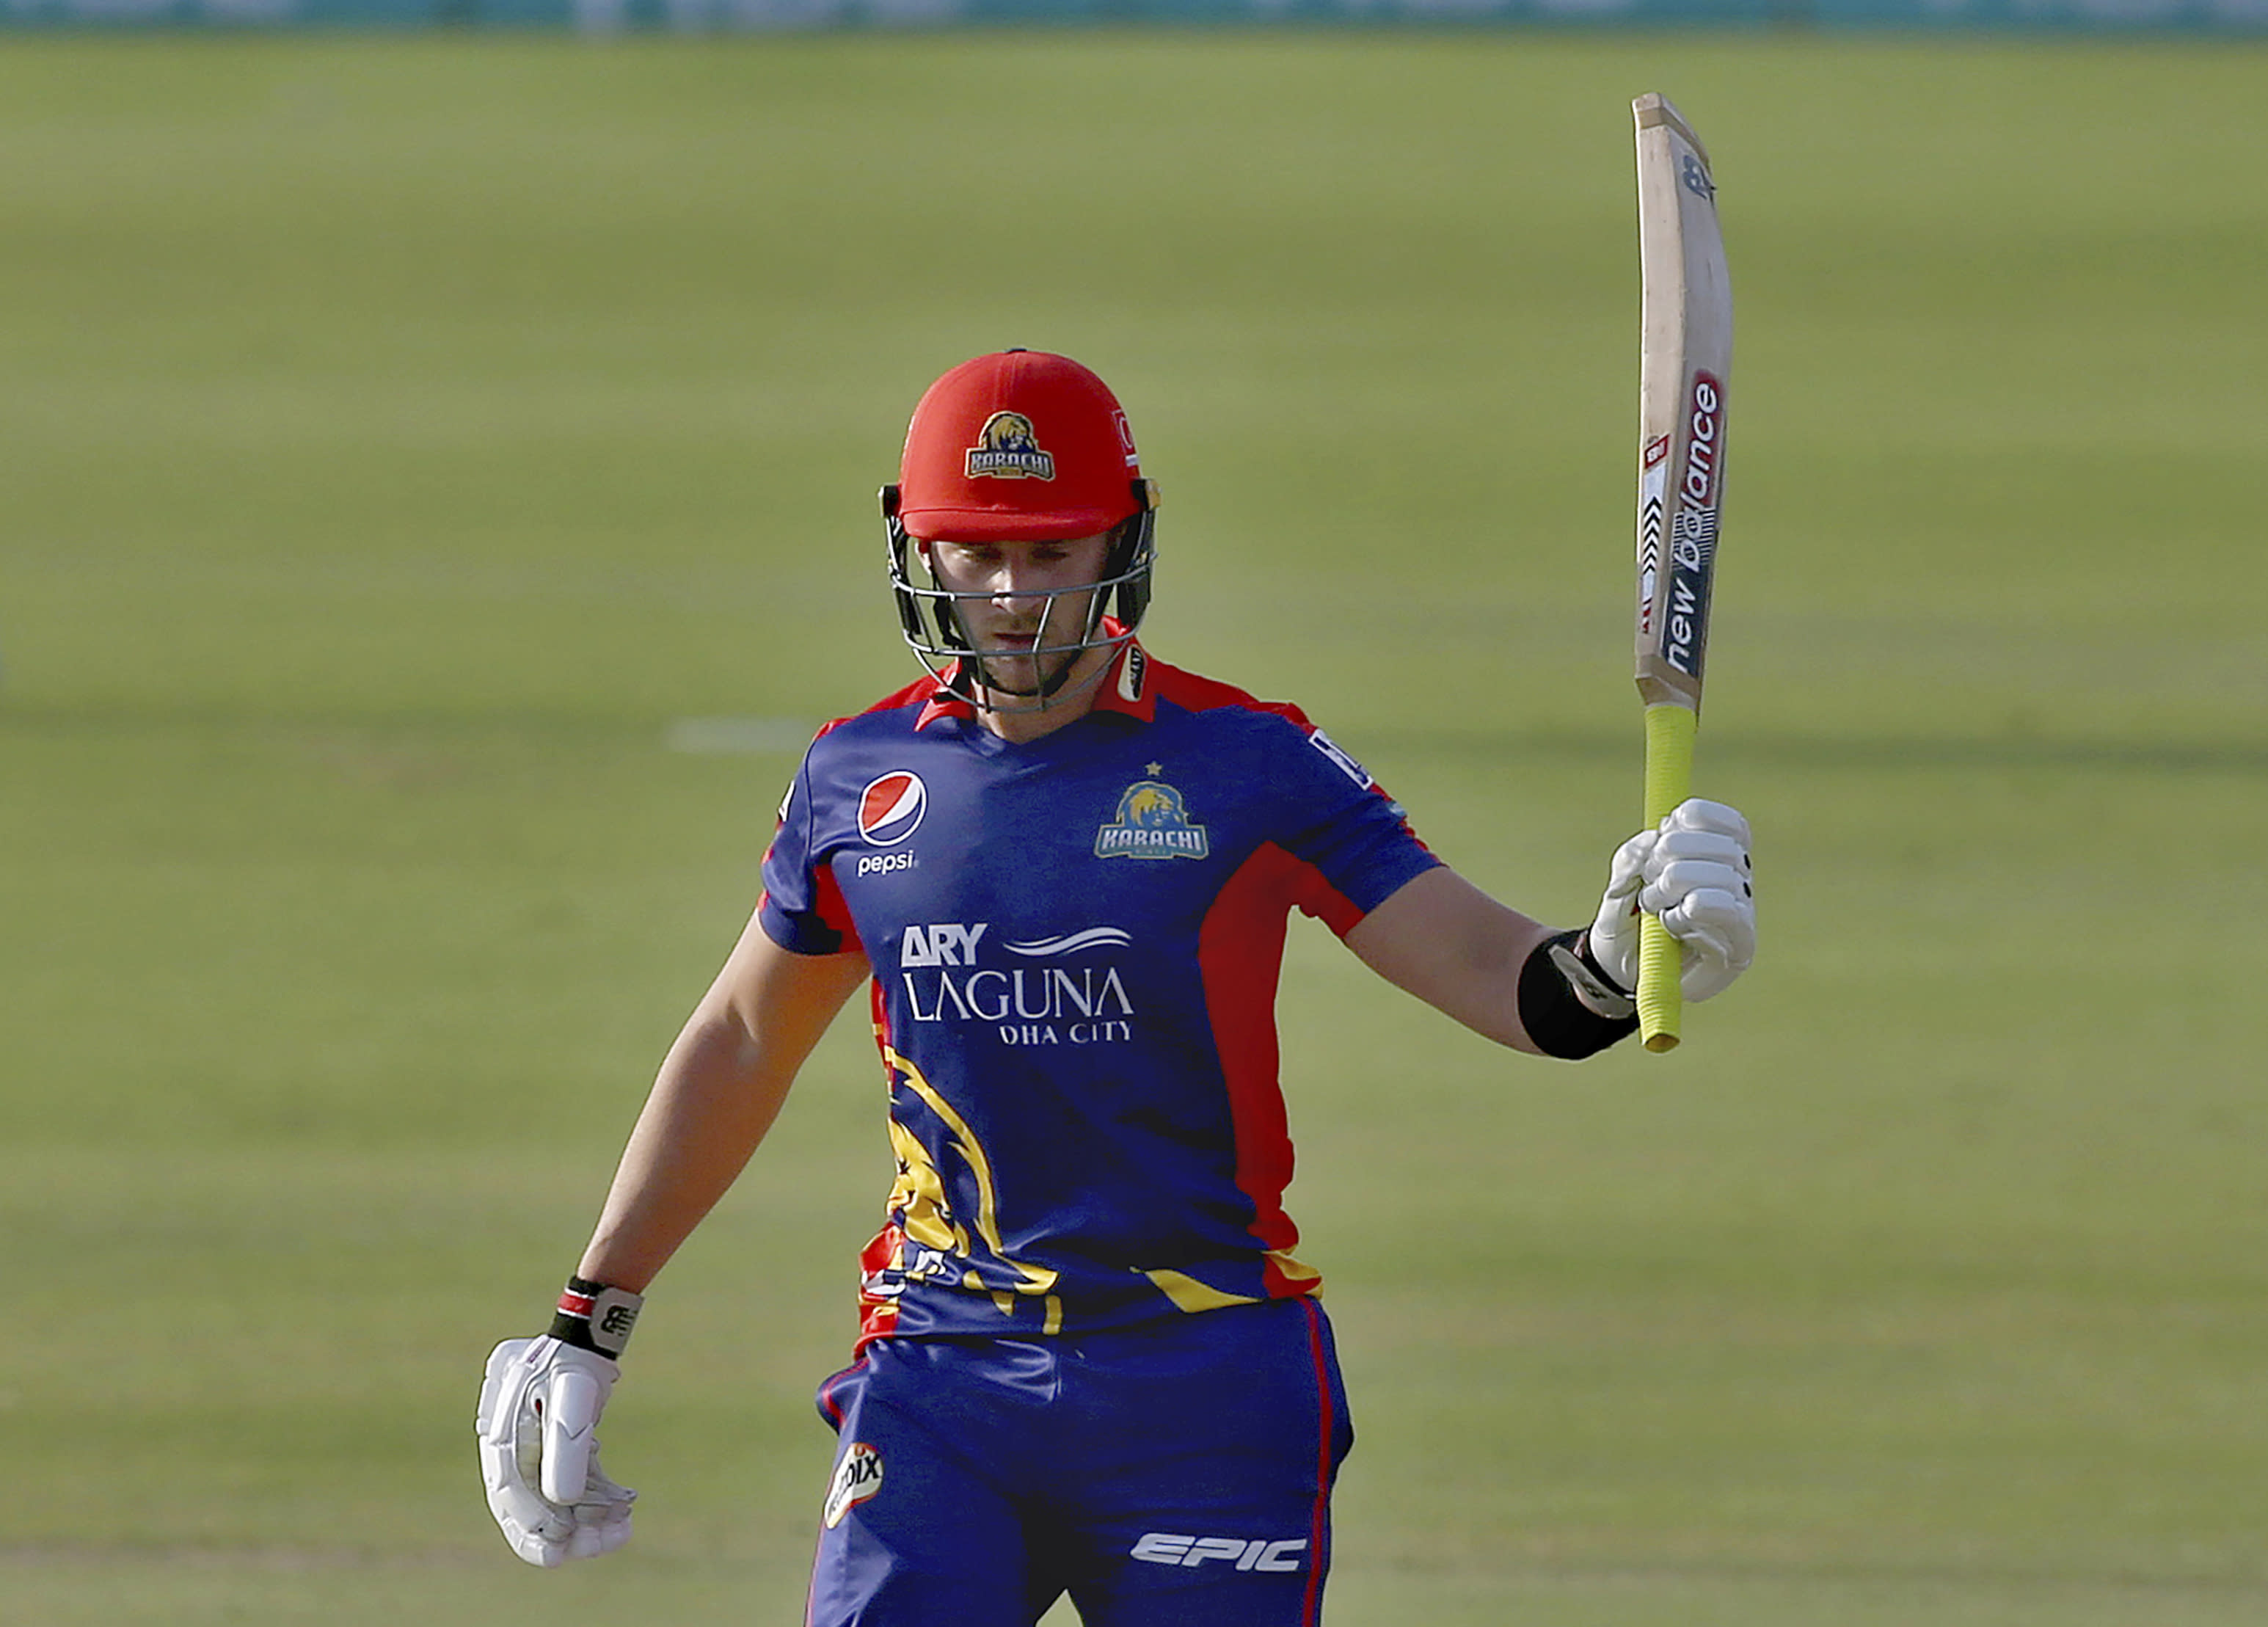 Karachi Kings' Joe Clarke raises bat to celebrate after scoring fifty during a Pakistan Super League T20 cricket match between Karachi Kings and Multan Sultans at the National Stadium, in Karachi, Pakistan, Saturday, Feb. 27, 2021. (AP Photo/Fareed Khan)